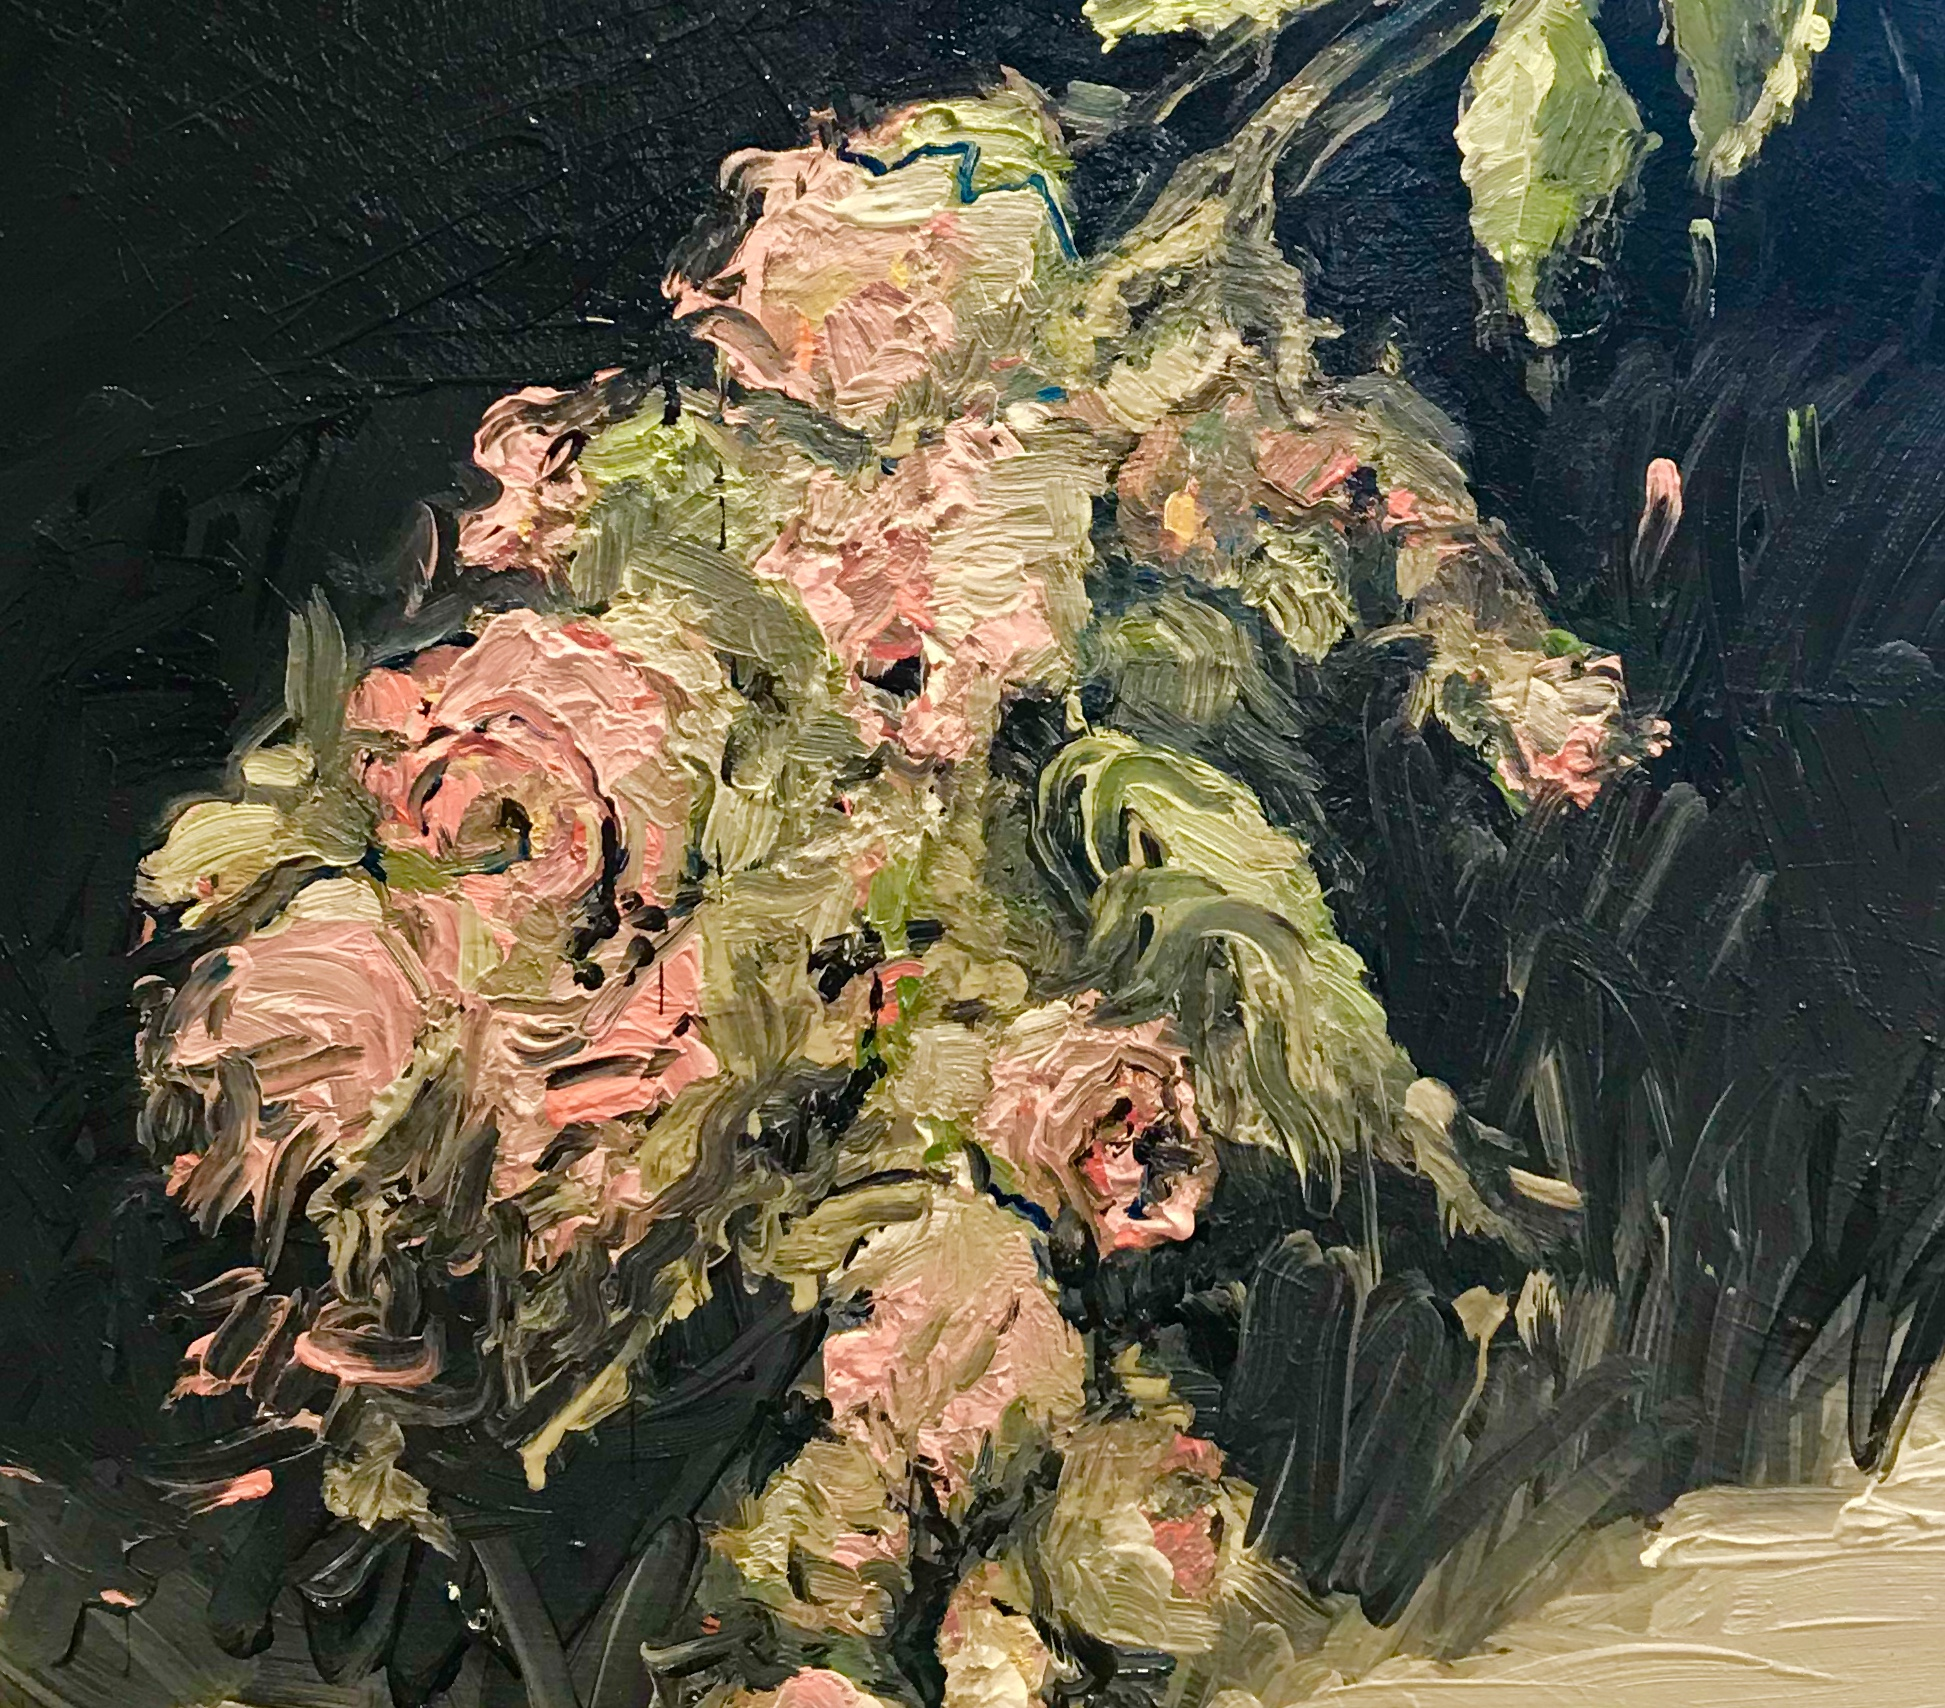 Flowers 70cm x 70cm oil/canvas HuMKz1551287710.jpg